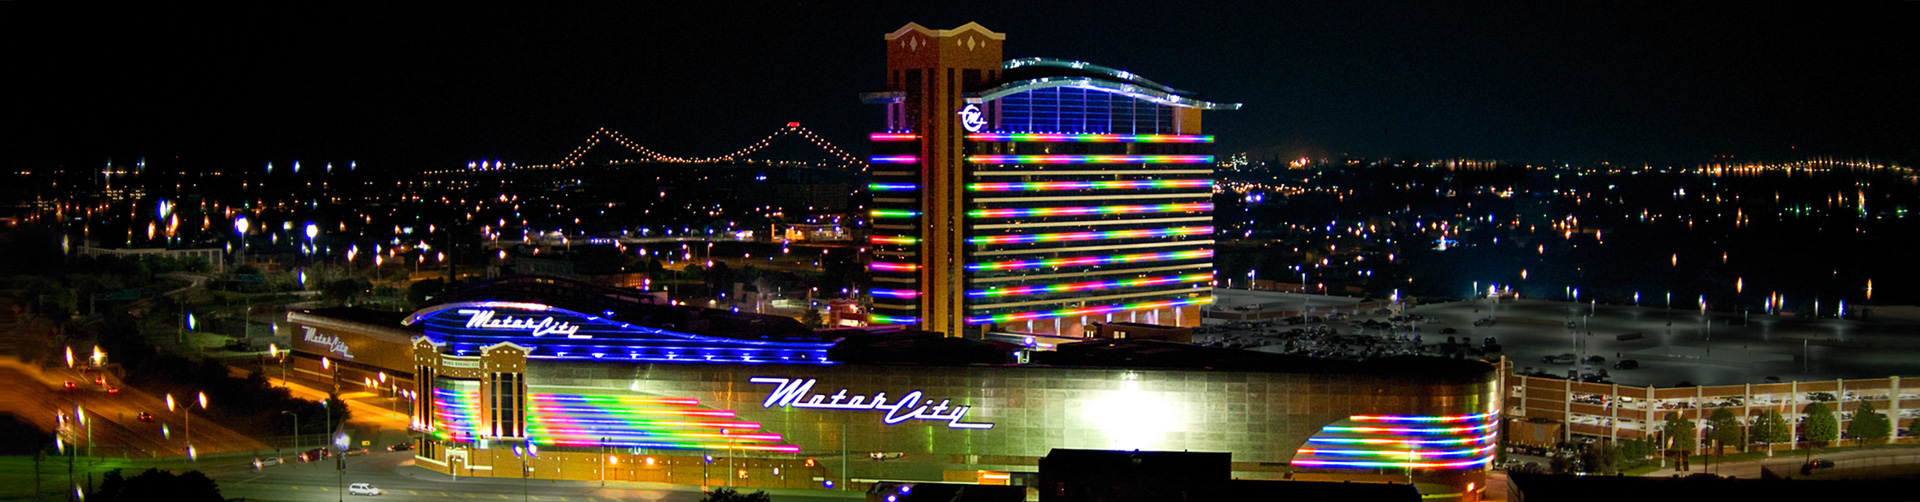 Motor city casino shows casino balckjack